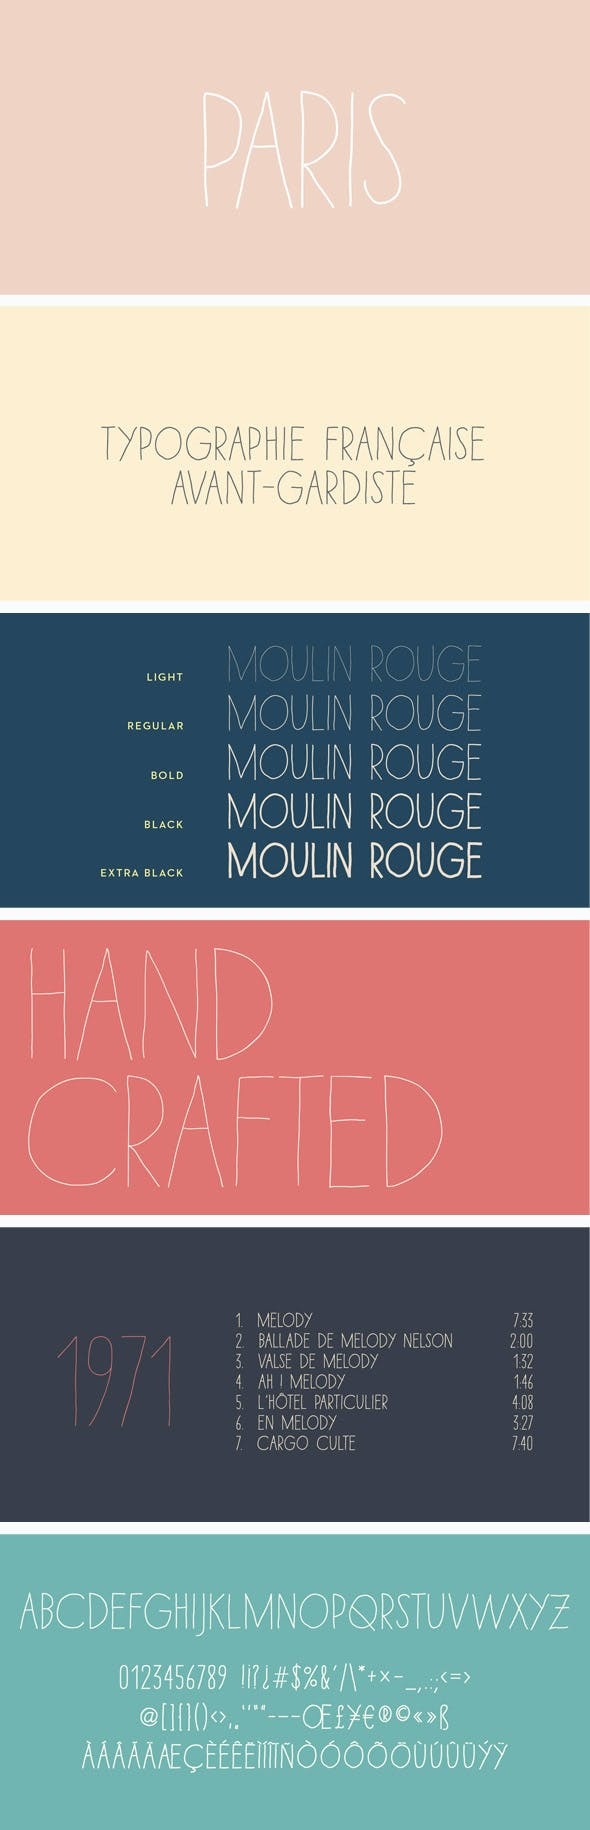 Download Paris Font Pack by SCType   GraphicRiver